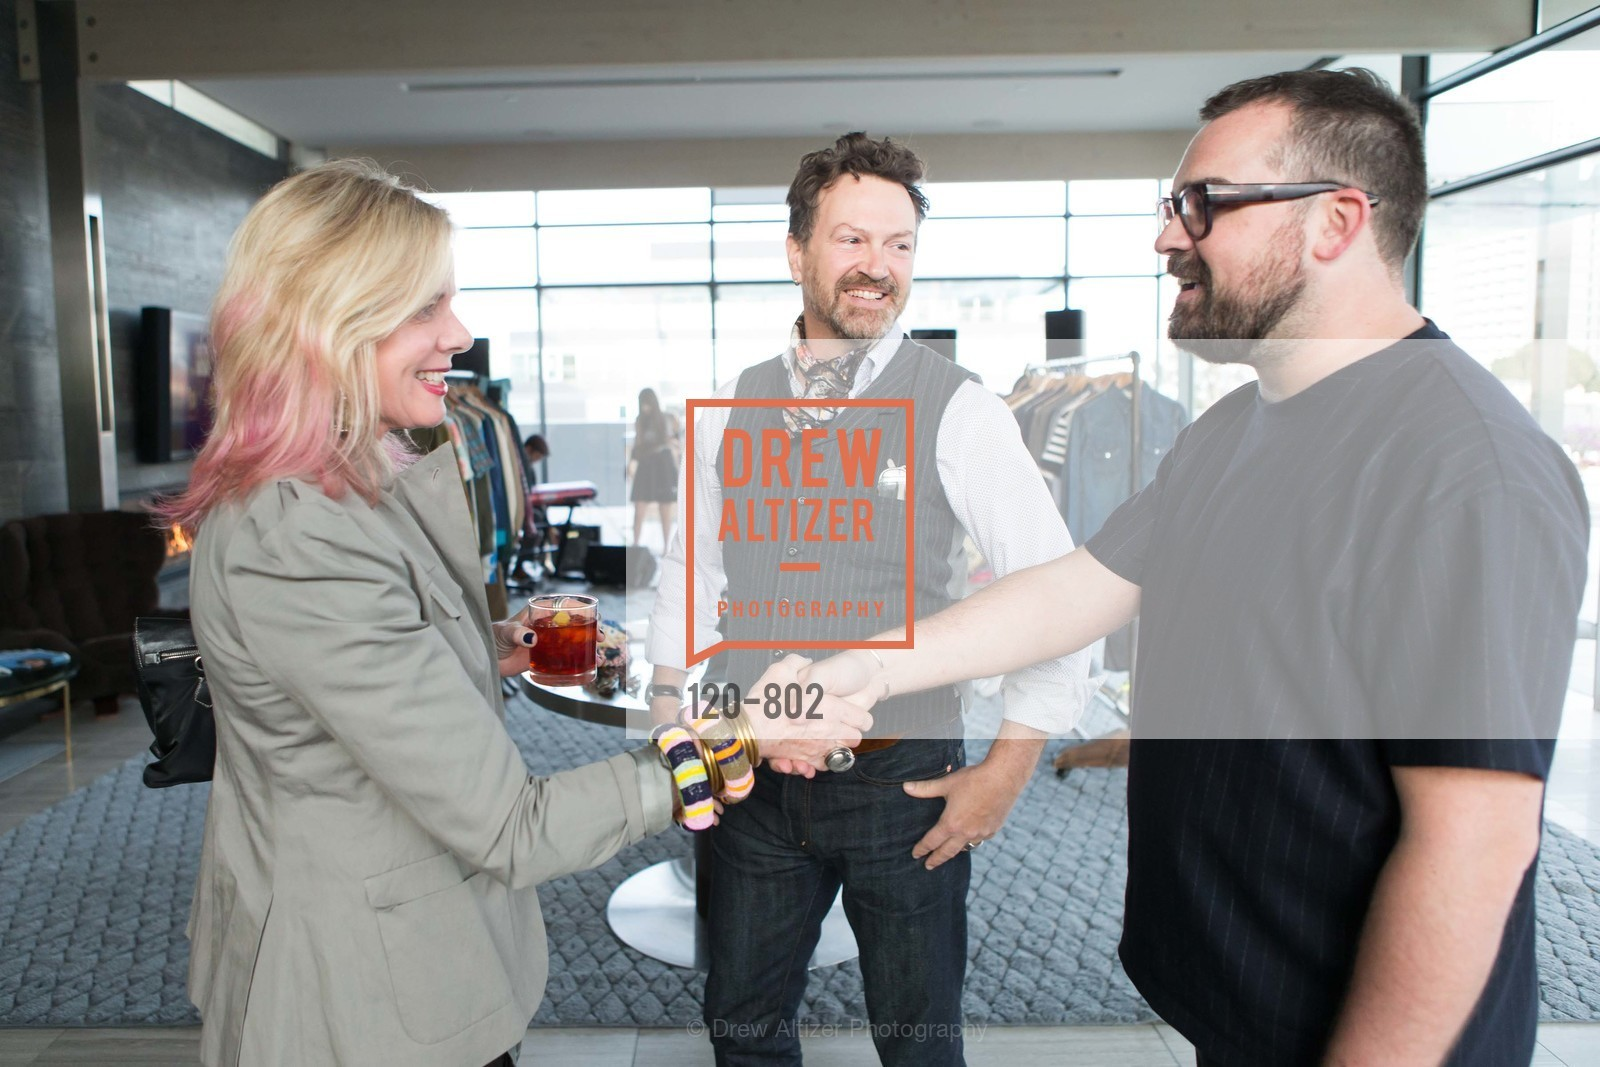 Susan McLaughlin, Paul D'Orleans, Andrew Lord, MR PORTER Celebrate The San Francisco Issue of The Journal, US, April 24th, 2015